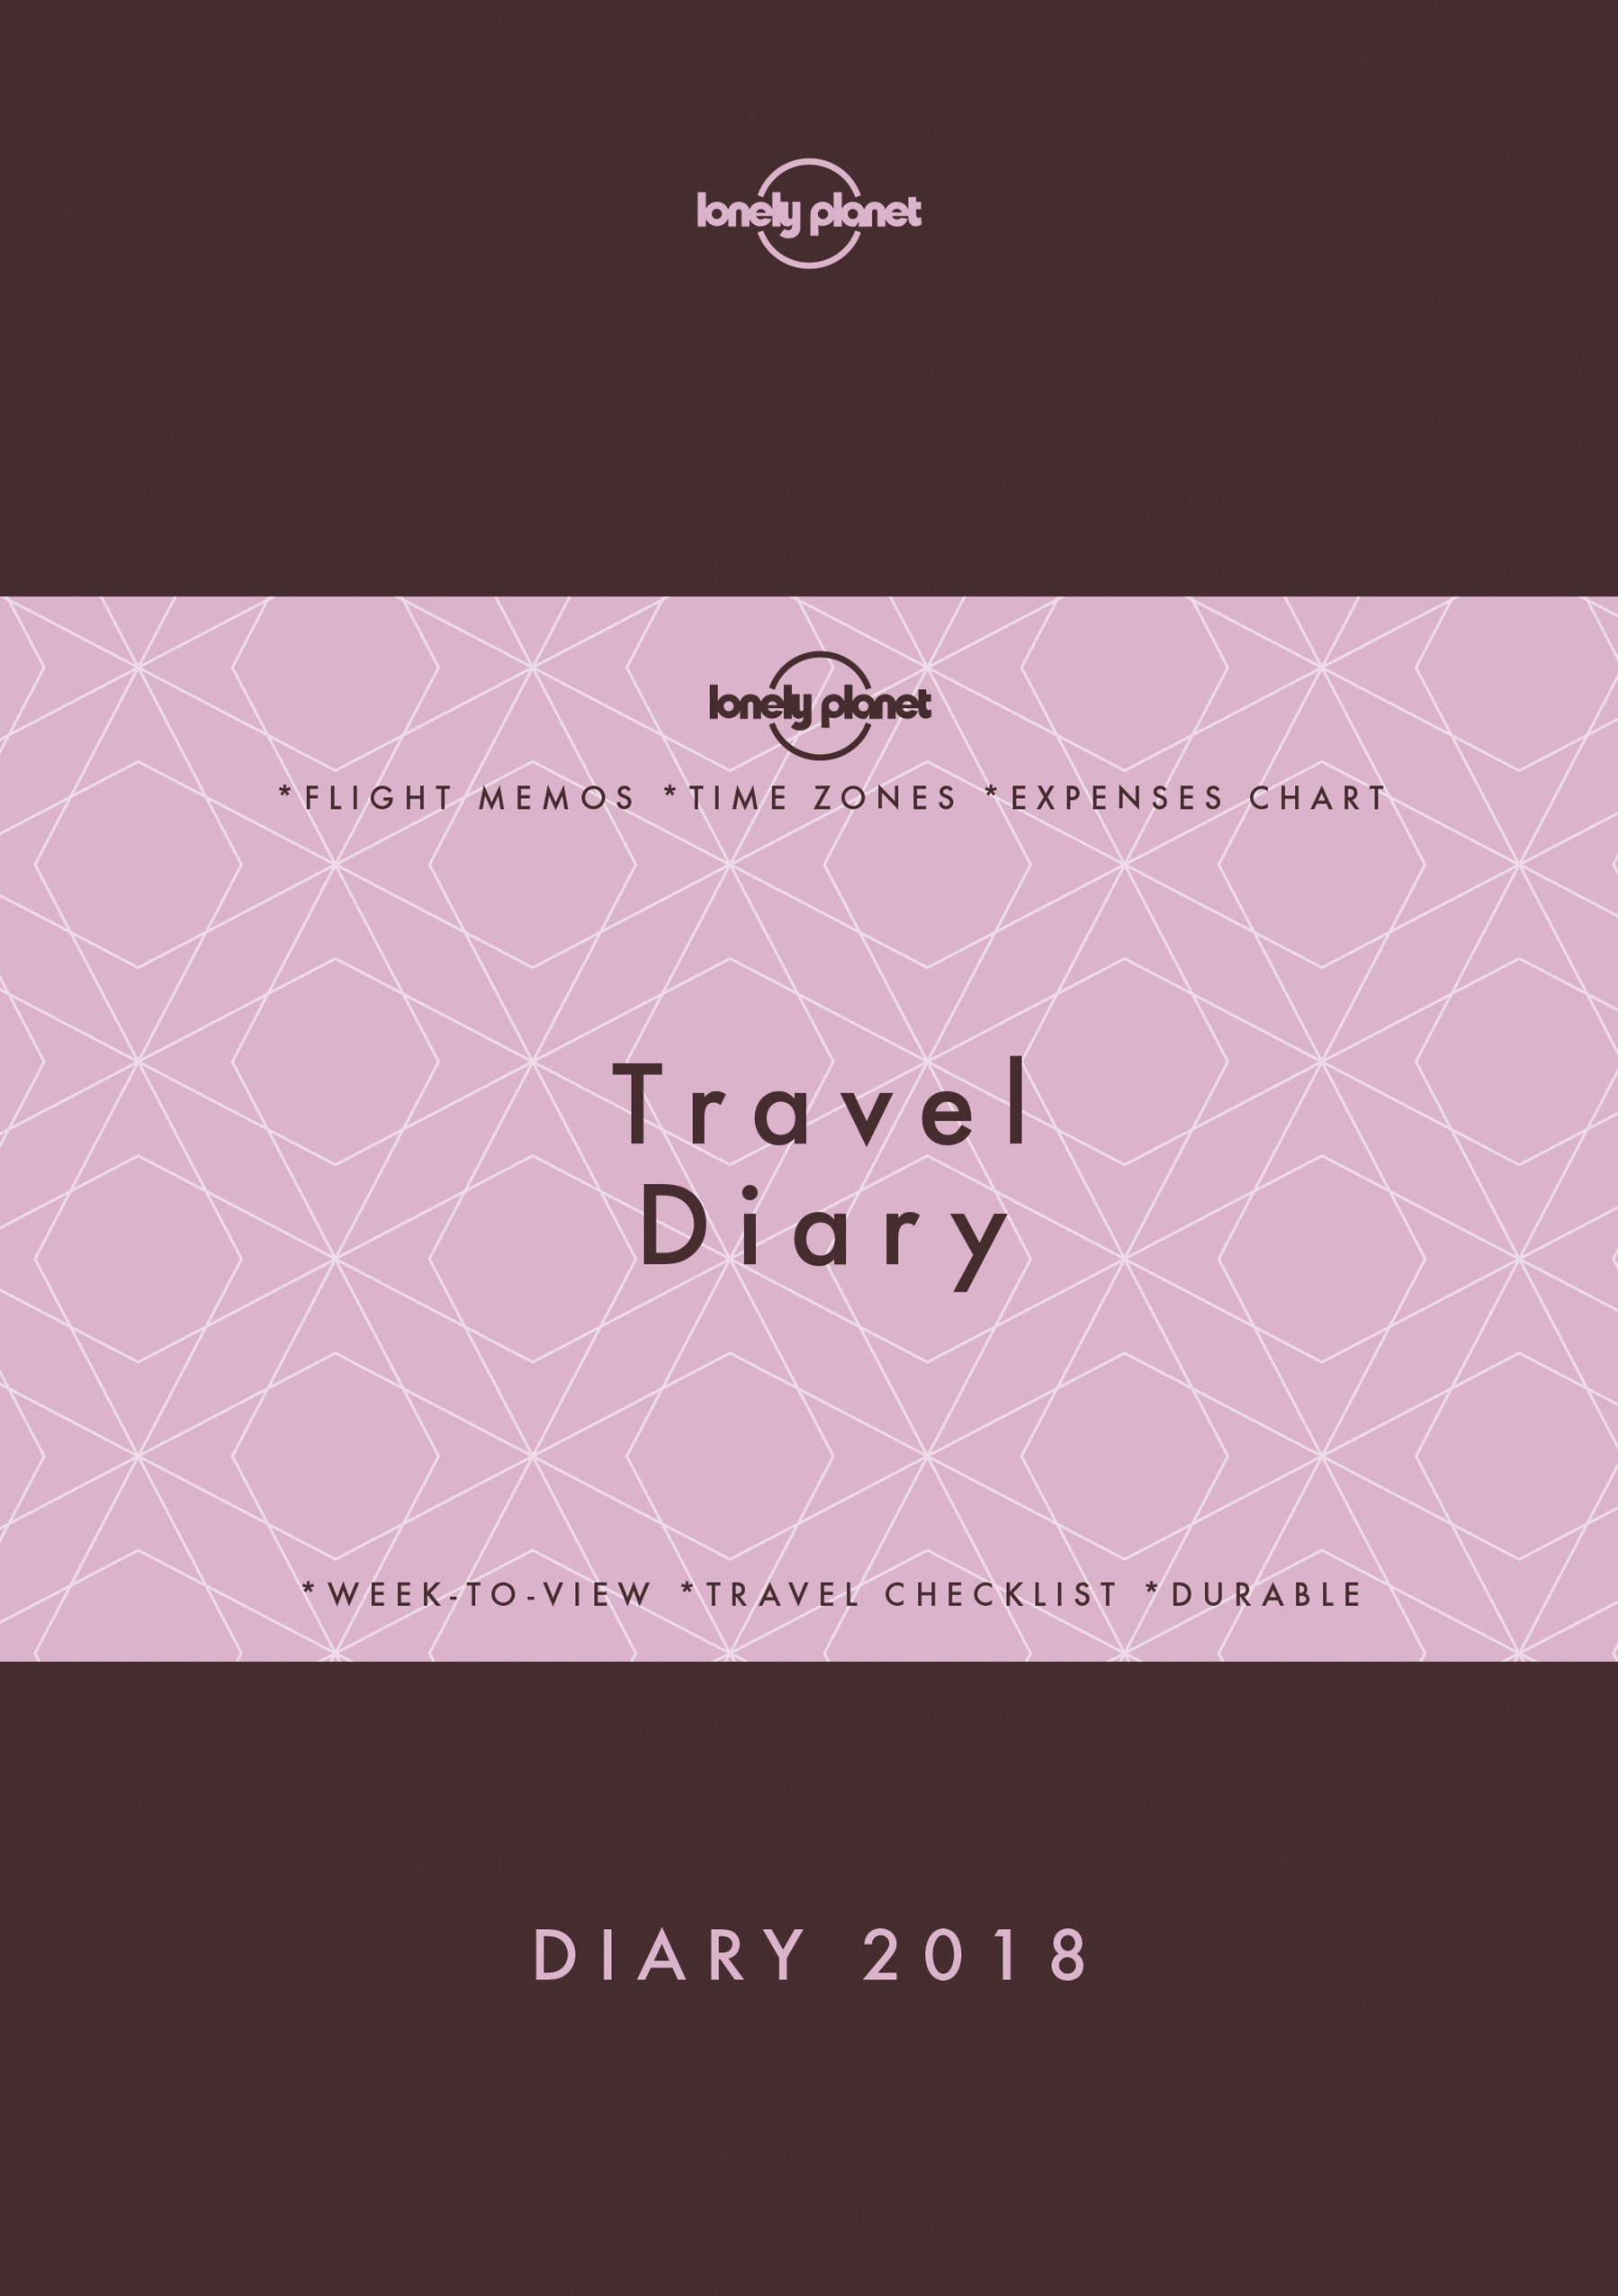 Lonely Planet Traveller's Diary 2018